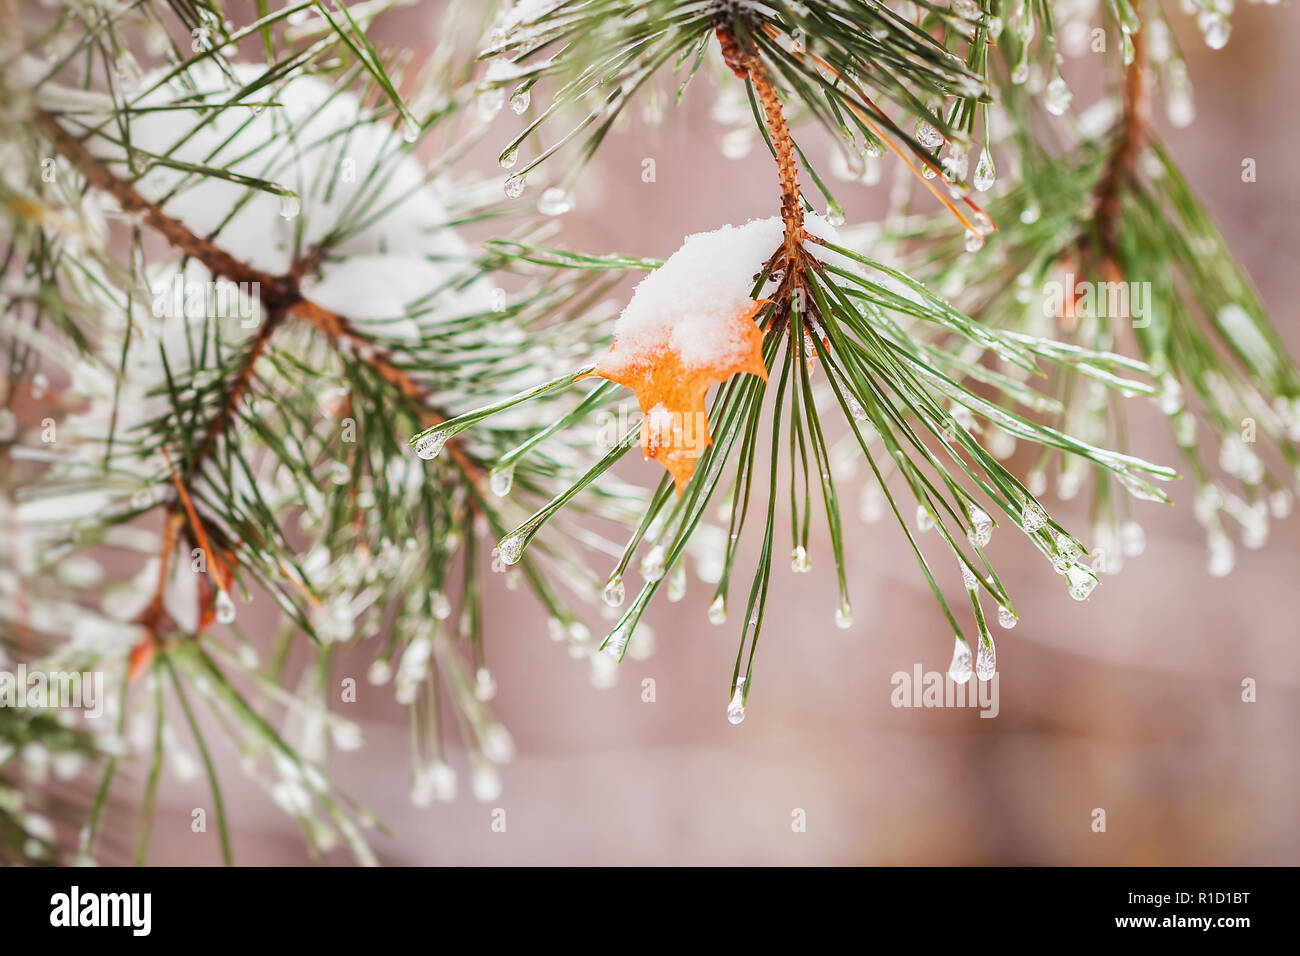 Winter begins. Autumn yellow maple leaf stuck on a pine-tree branch under first freezing rain - Stock Image